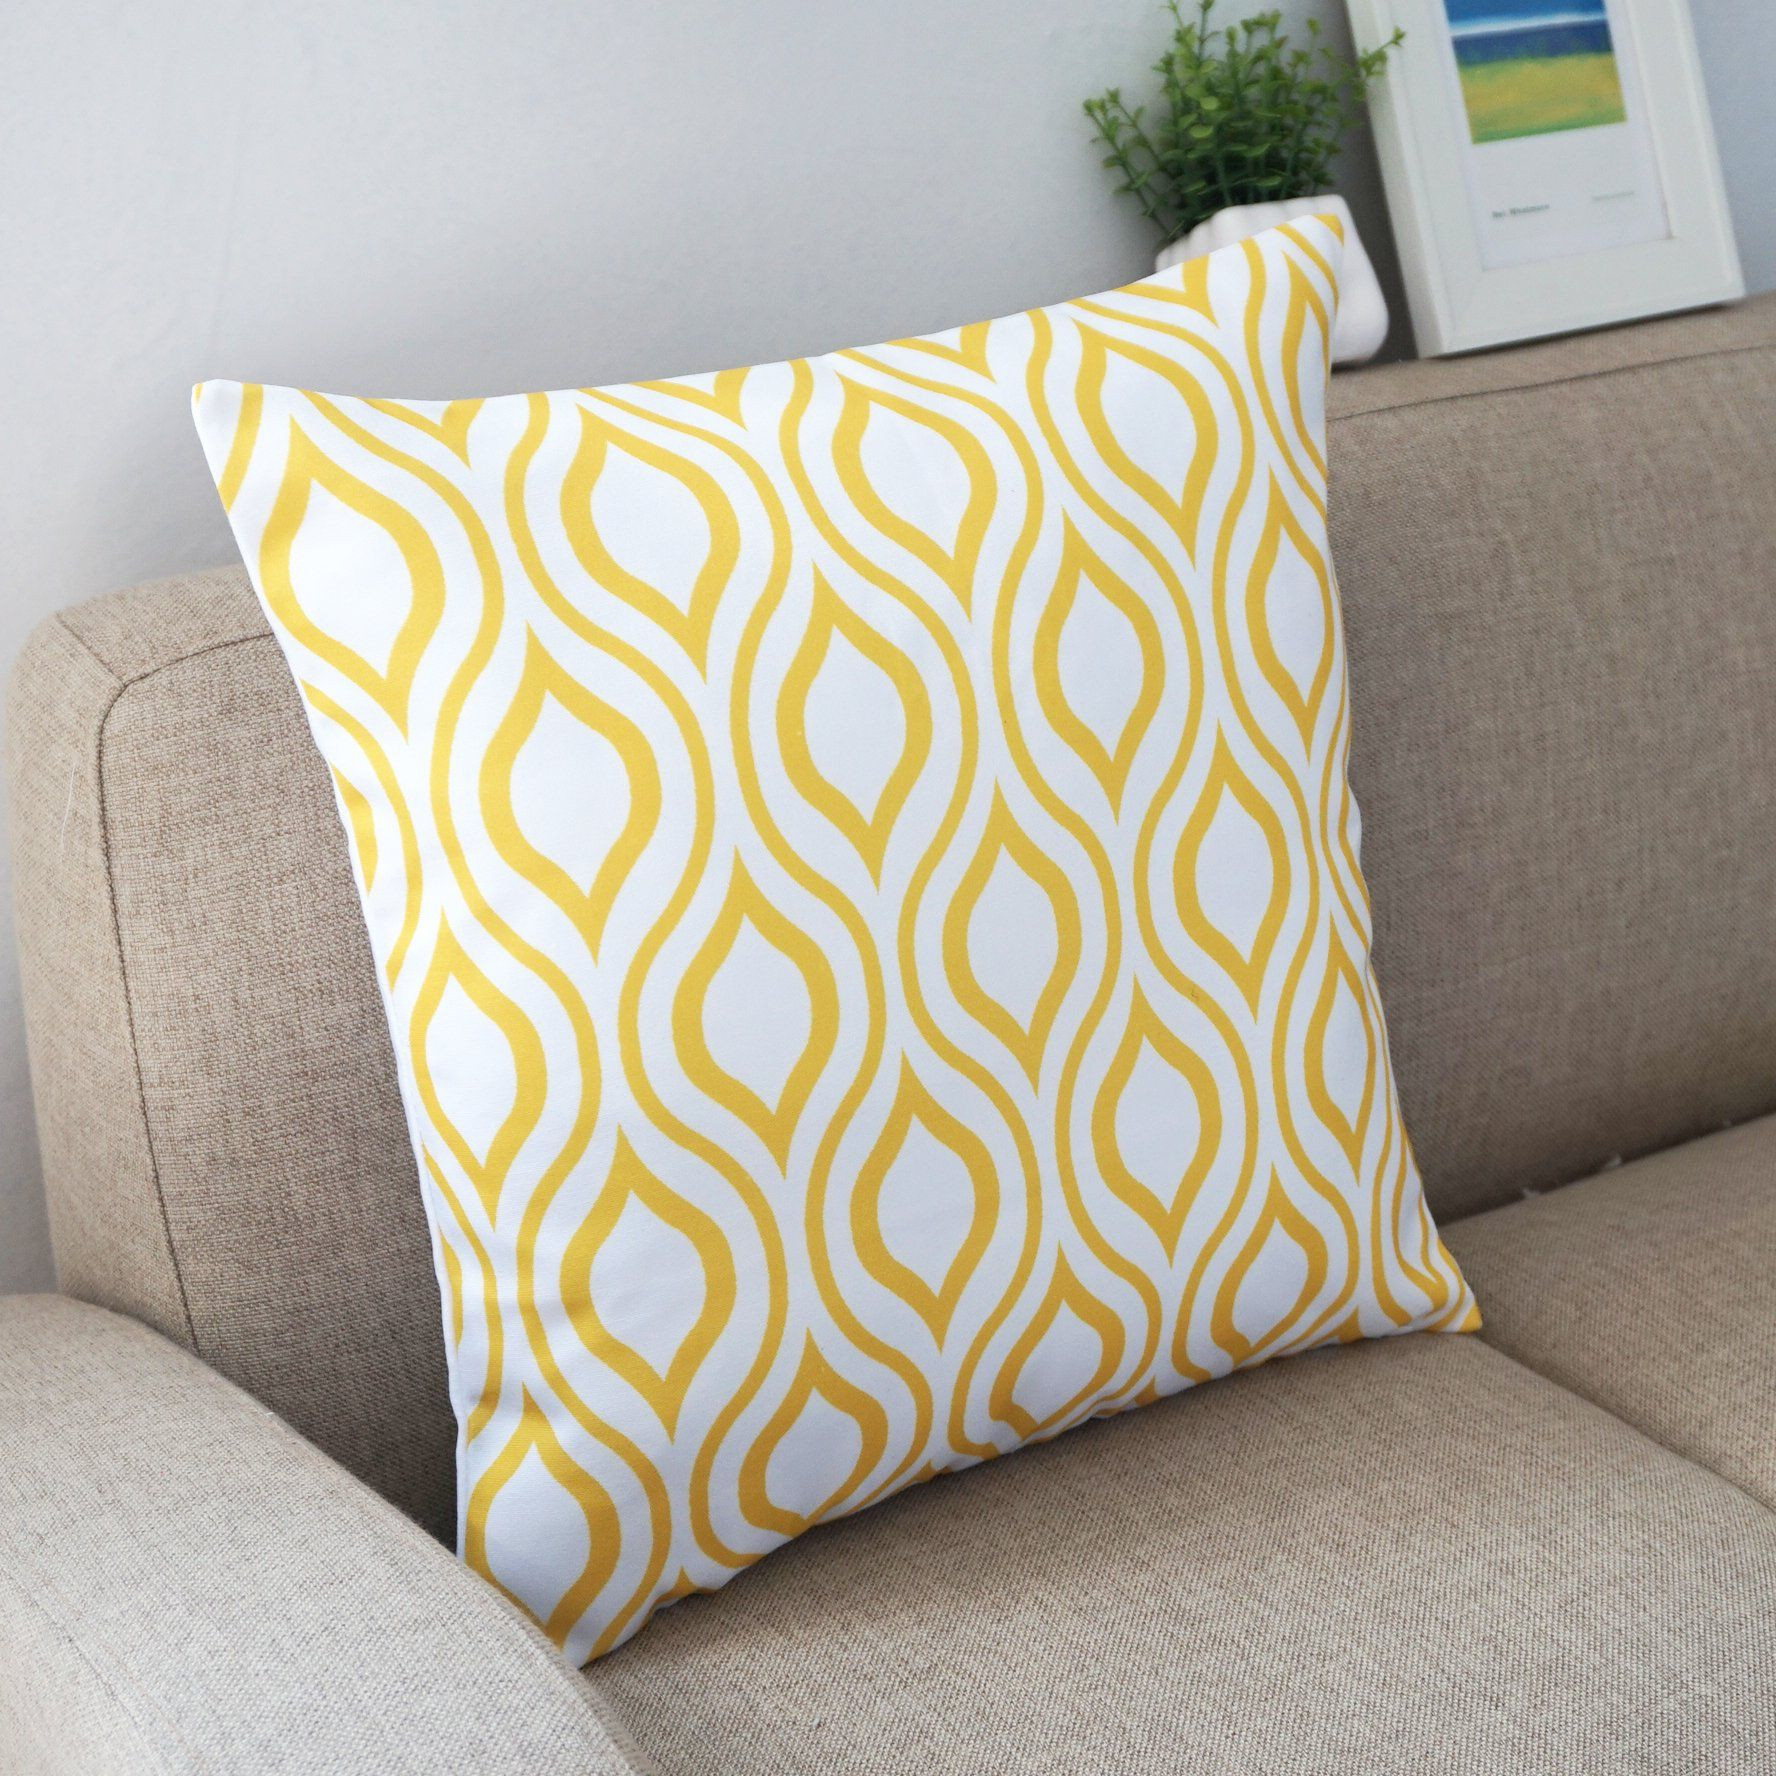 Howarmer canvas cotton throw pillows cover for couch set of lemon